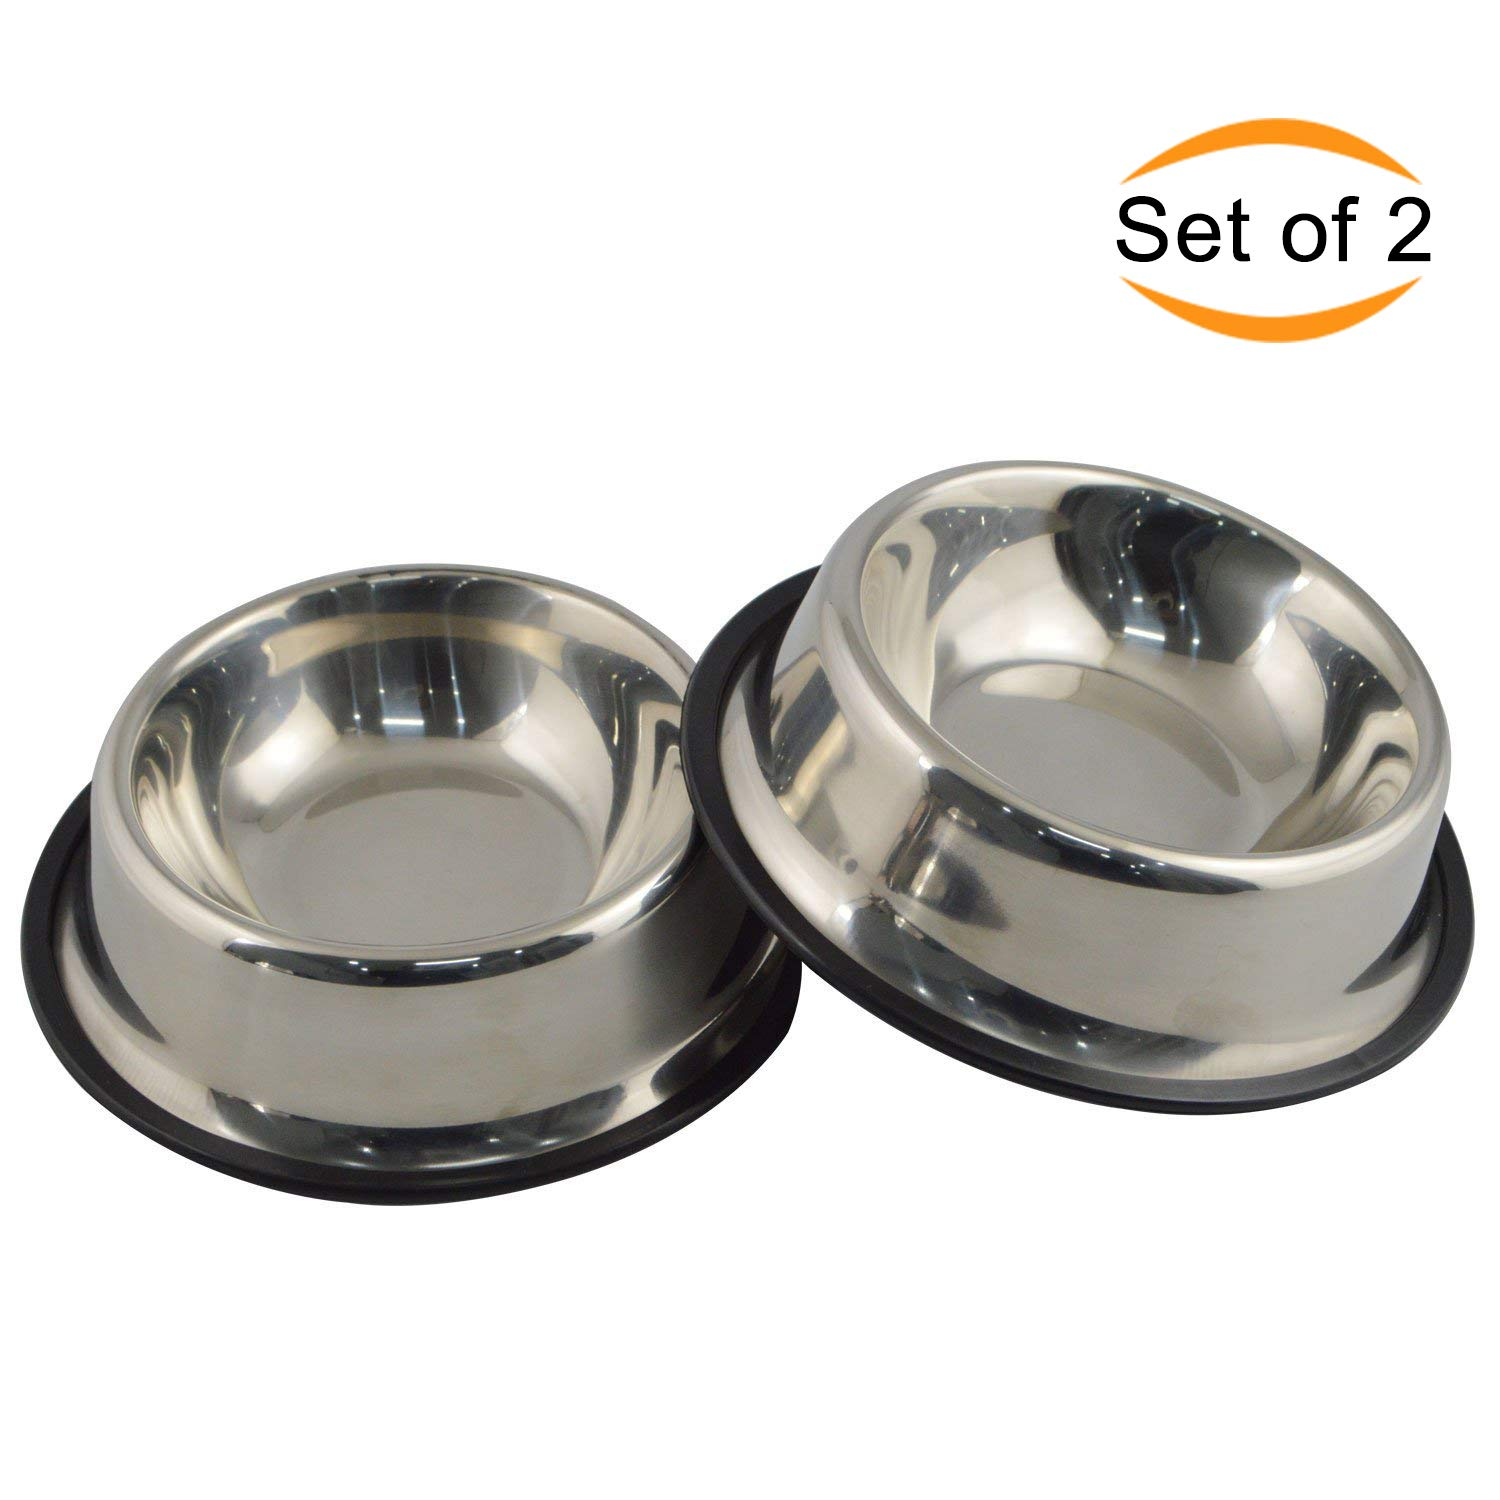 Mlife Stainless Steel Dog Bowl with Rubber Base for Small Medium Large Dogs Pets Feeder Bowl and Water Bowl Perfect Choice Set of 2